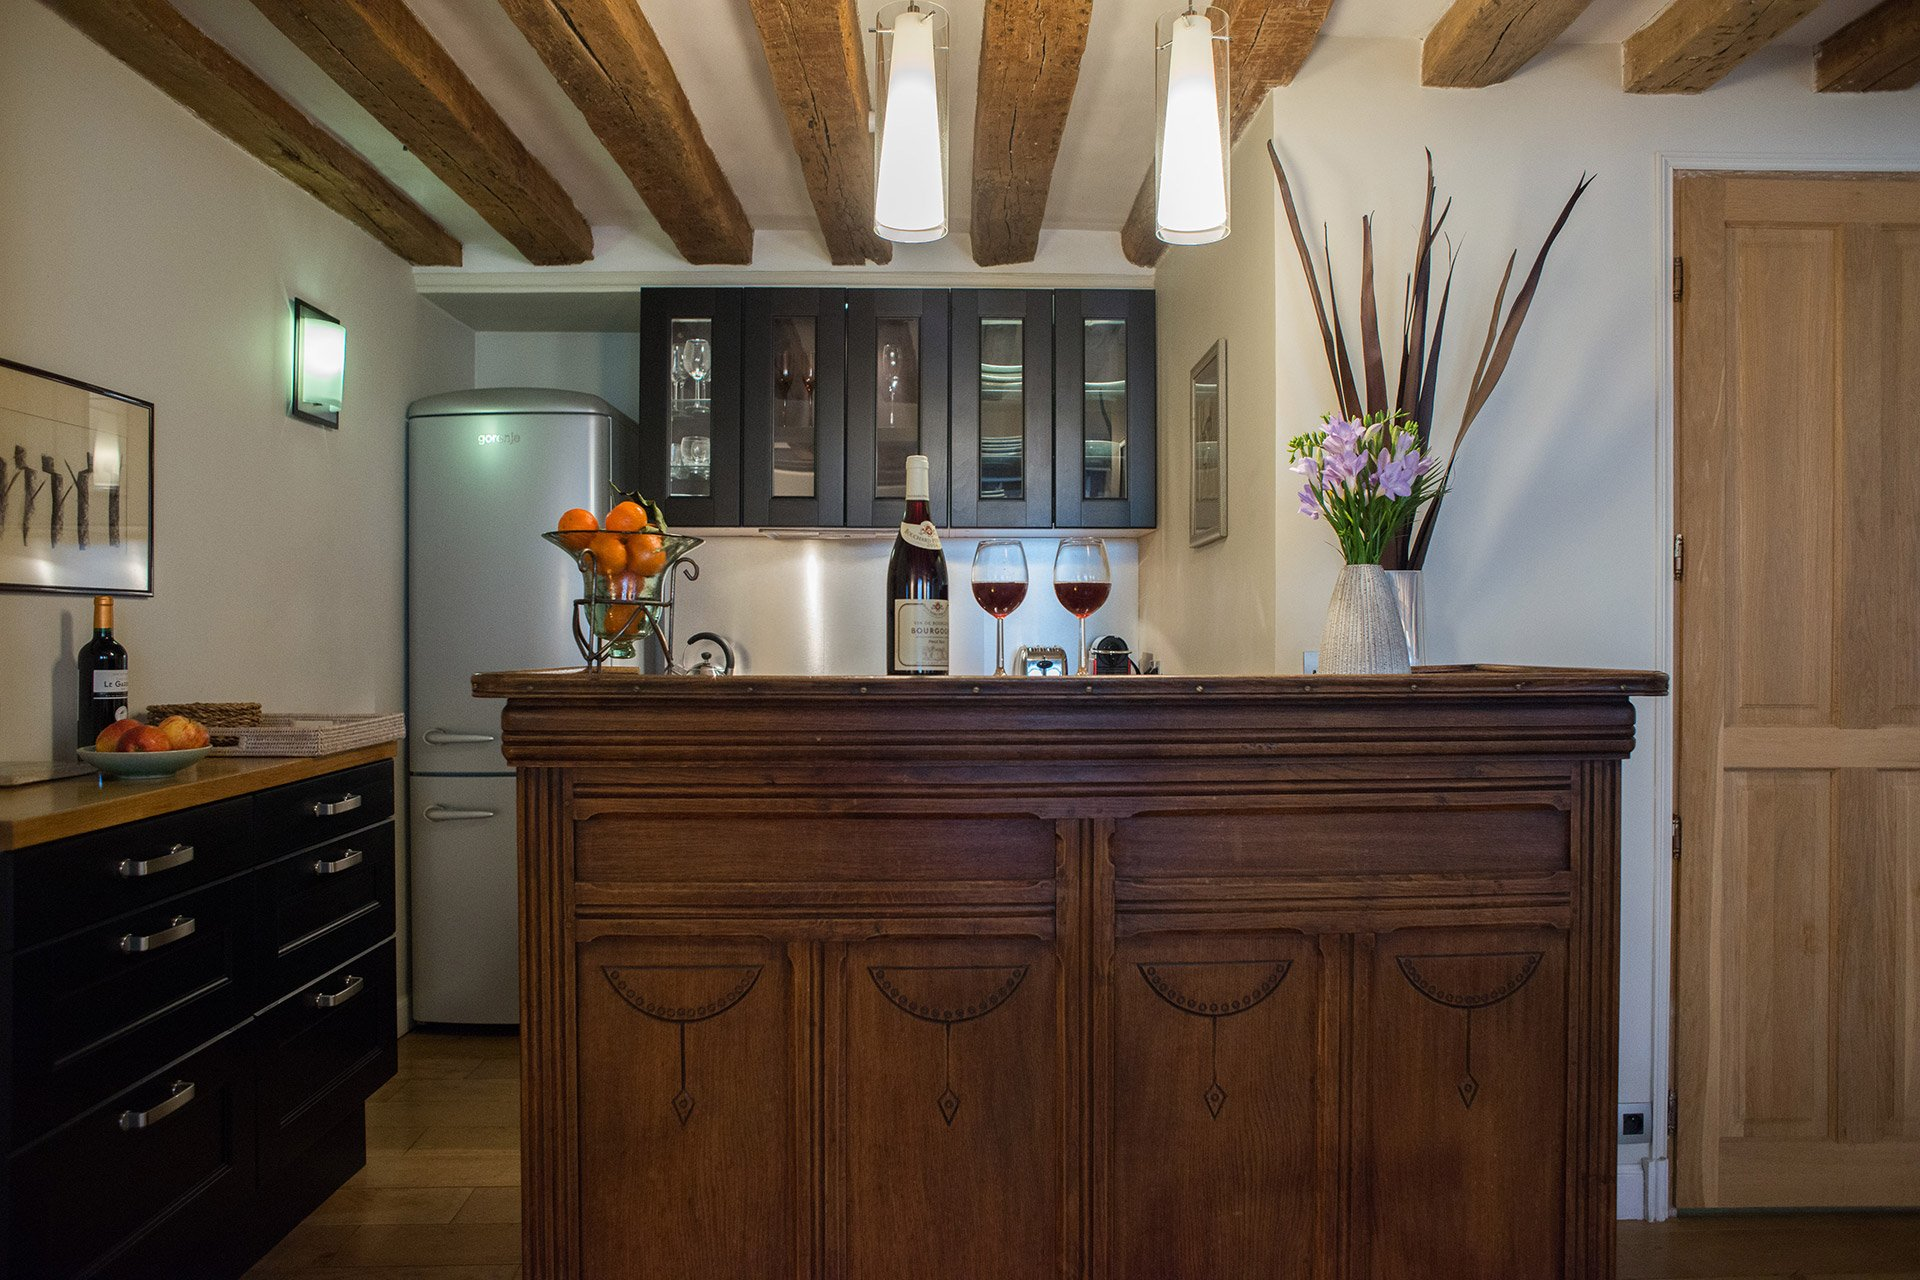 Enjoy apero hour in the kitchen of the Brittany vacation rental offered by Paris Perfect